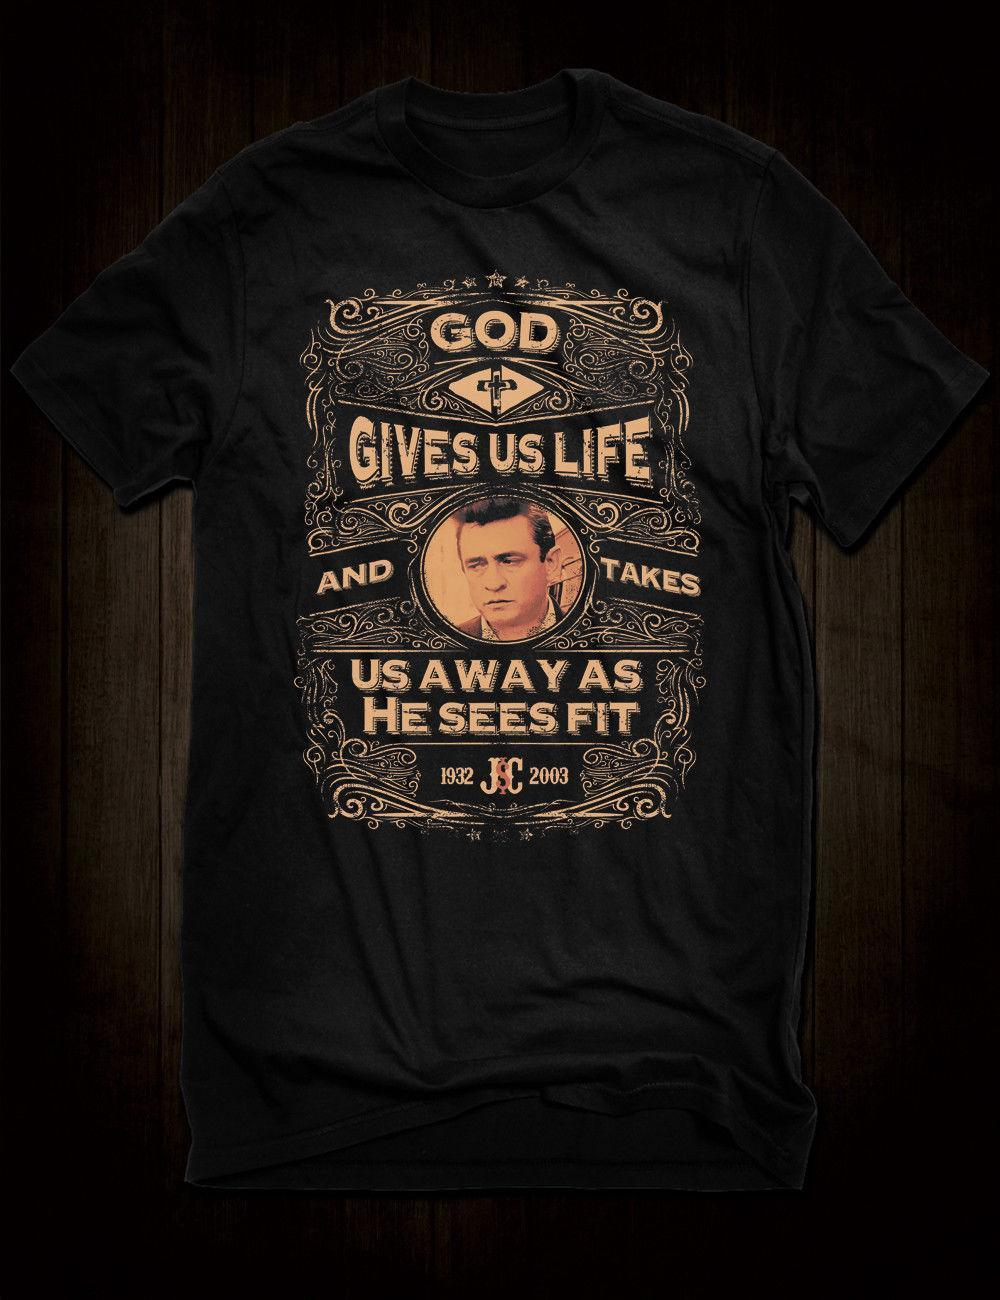 6991d0d6f0 New Black Johnny Cash Inspired Quote T Shirt God Gives Us Life Man In Black  New Arrival Male Tees Casual Boy T Shirt Tops Discounts Tee Shirts Online  ...